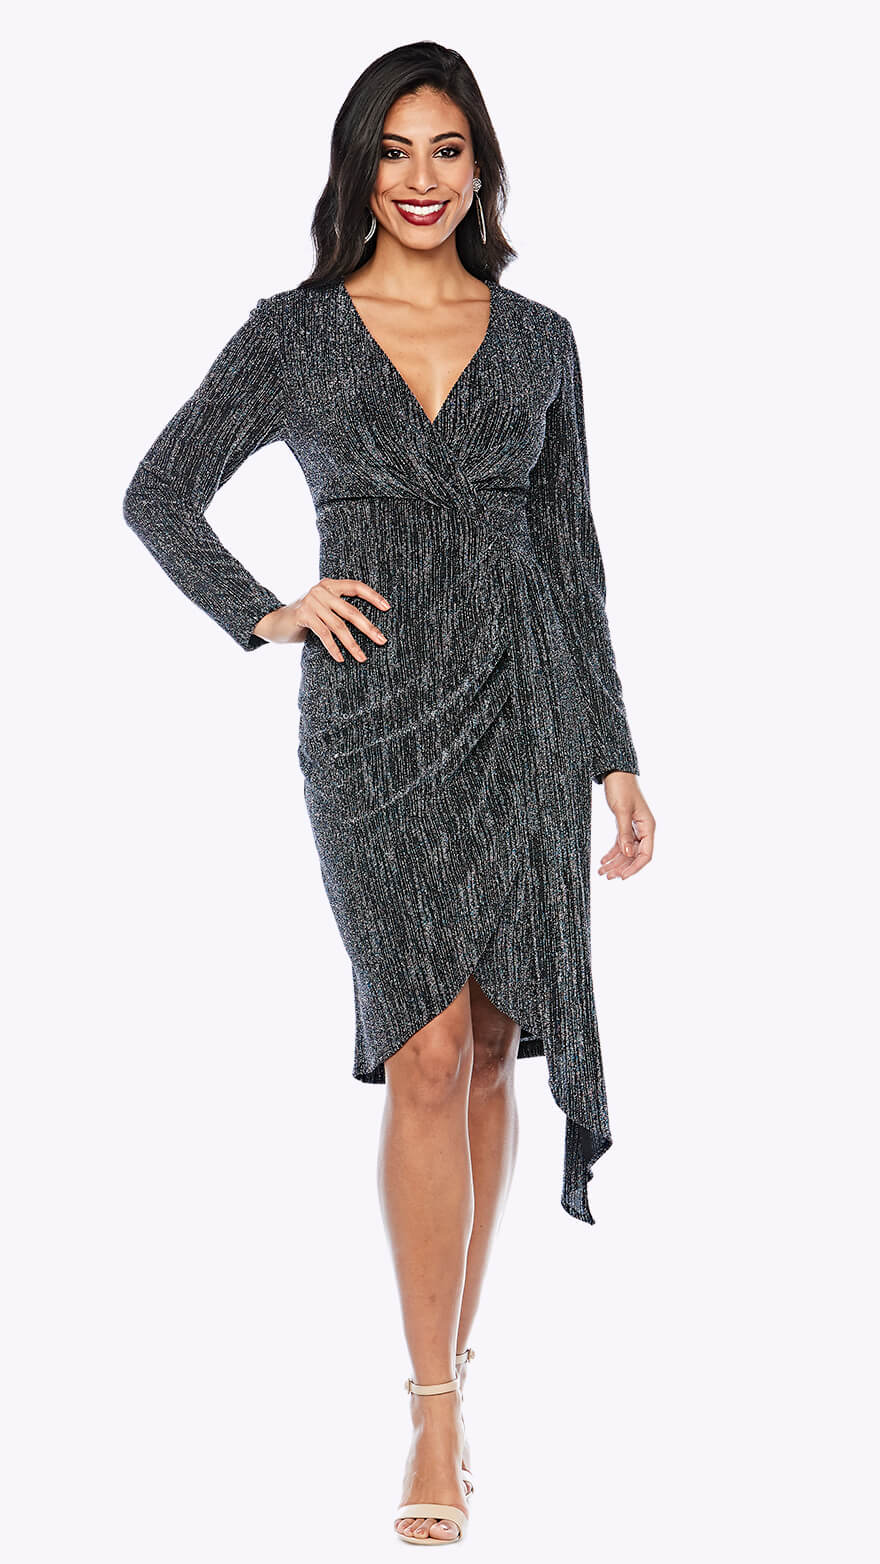 Z0203 Shimmer wrap style cocktail dress with full-length sleeve